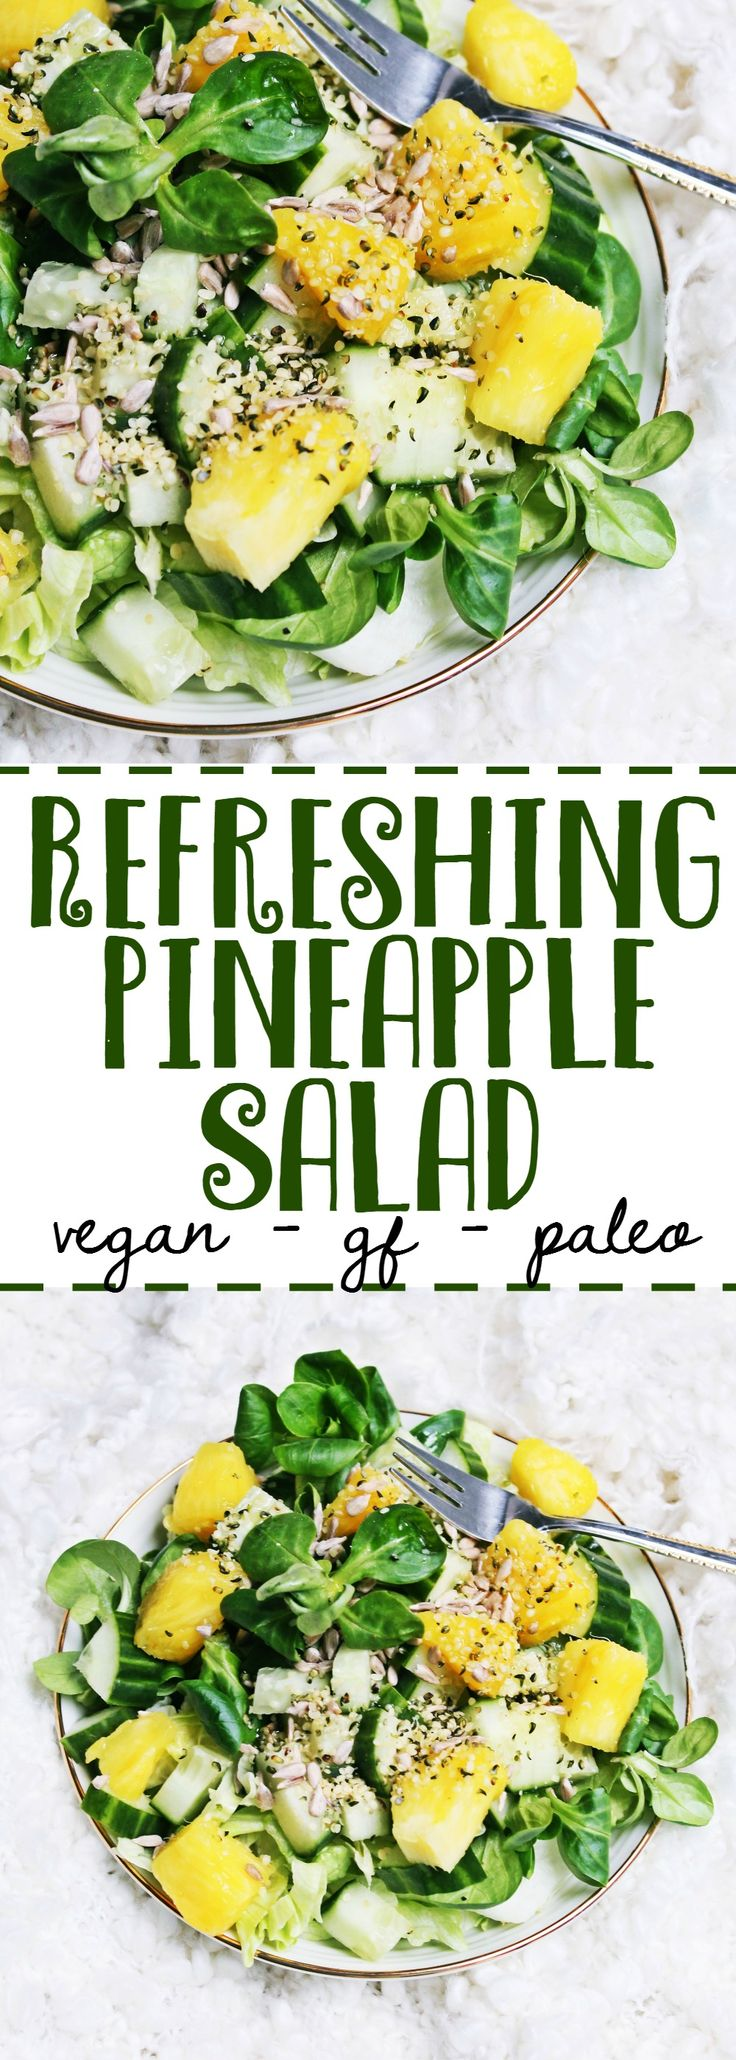 The Easiest and Most Satisfying Salad You'll Ever Make | Refreshing pineapple salad